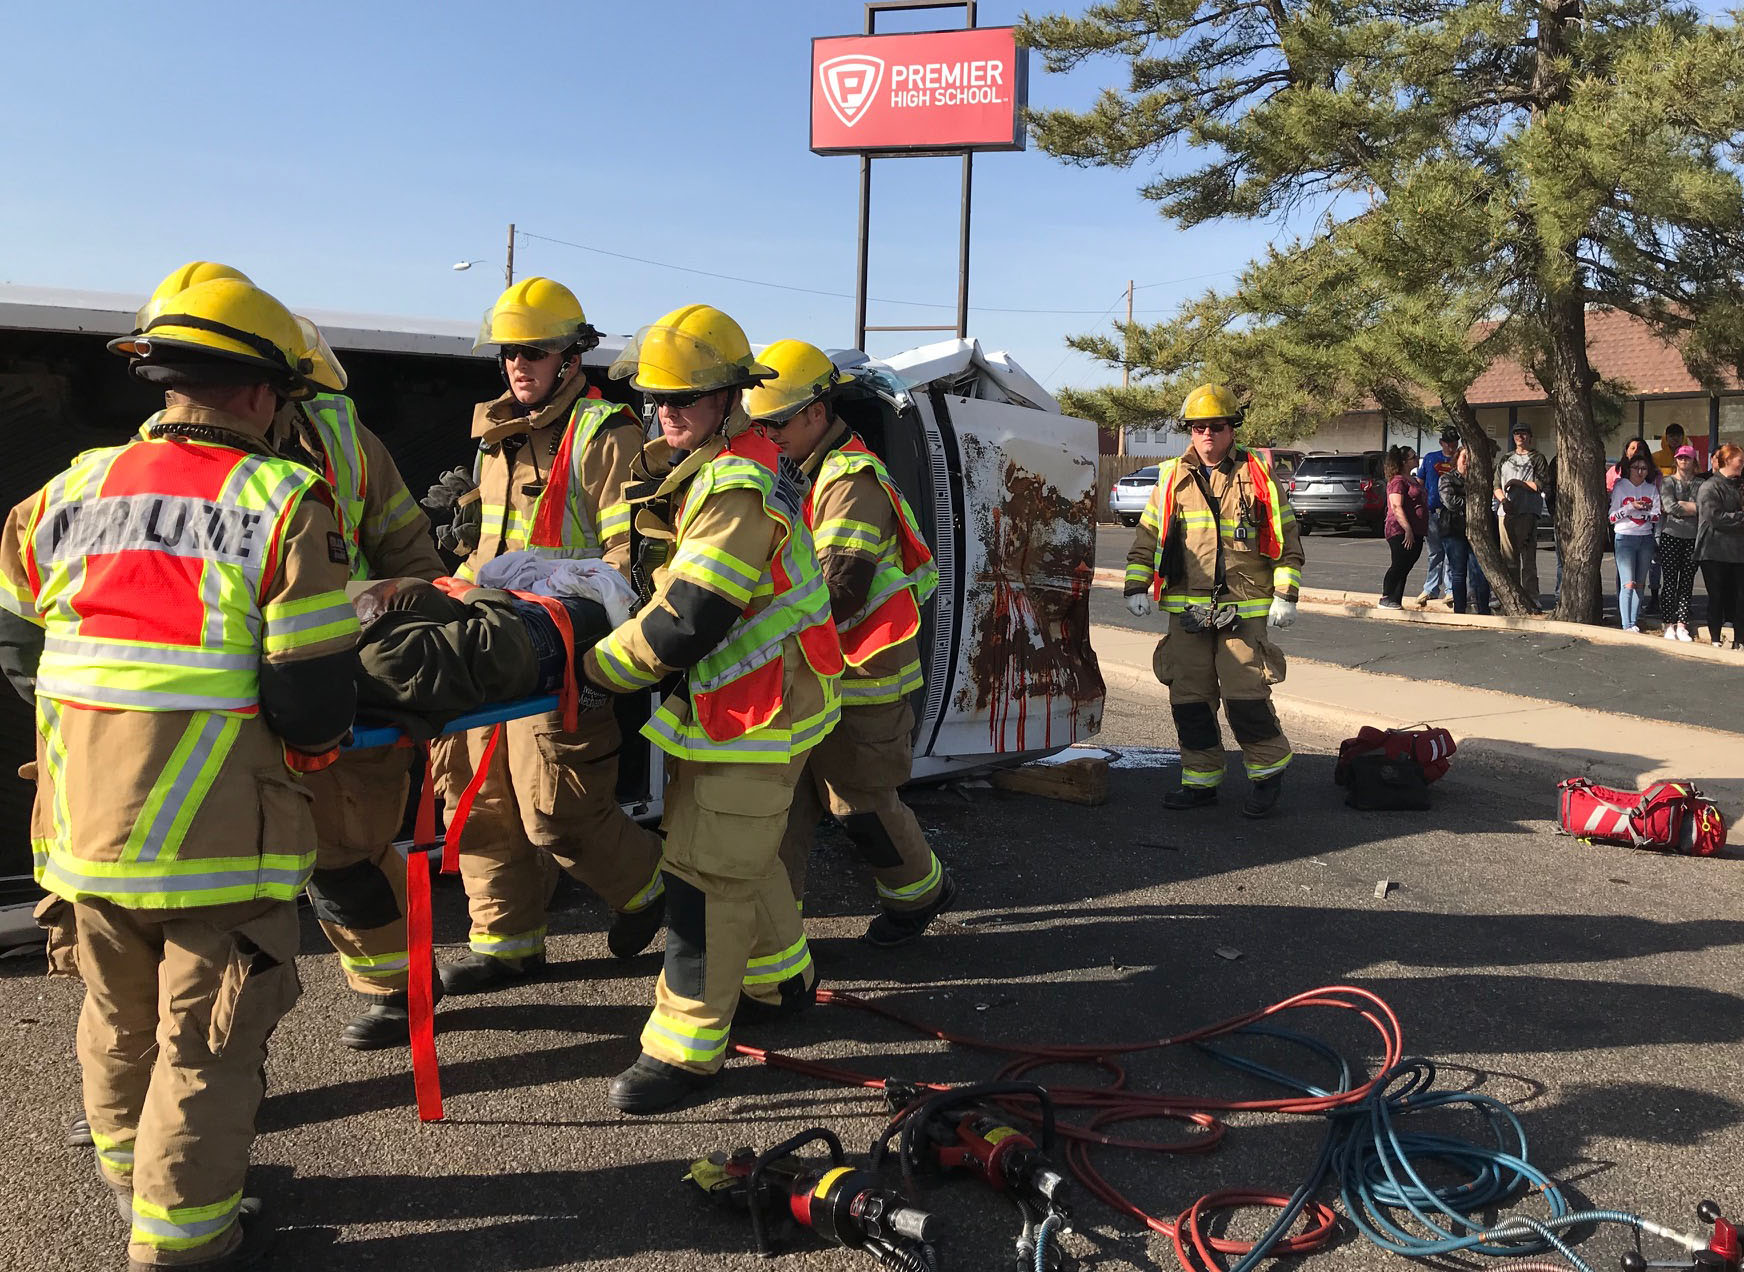 Shattered Dreams DUI Simulation Impacts Students at Premier